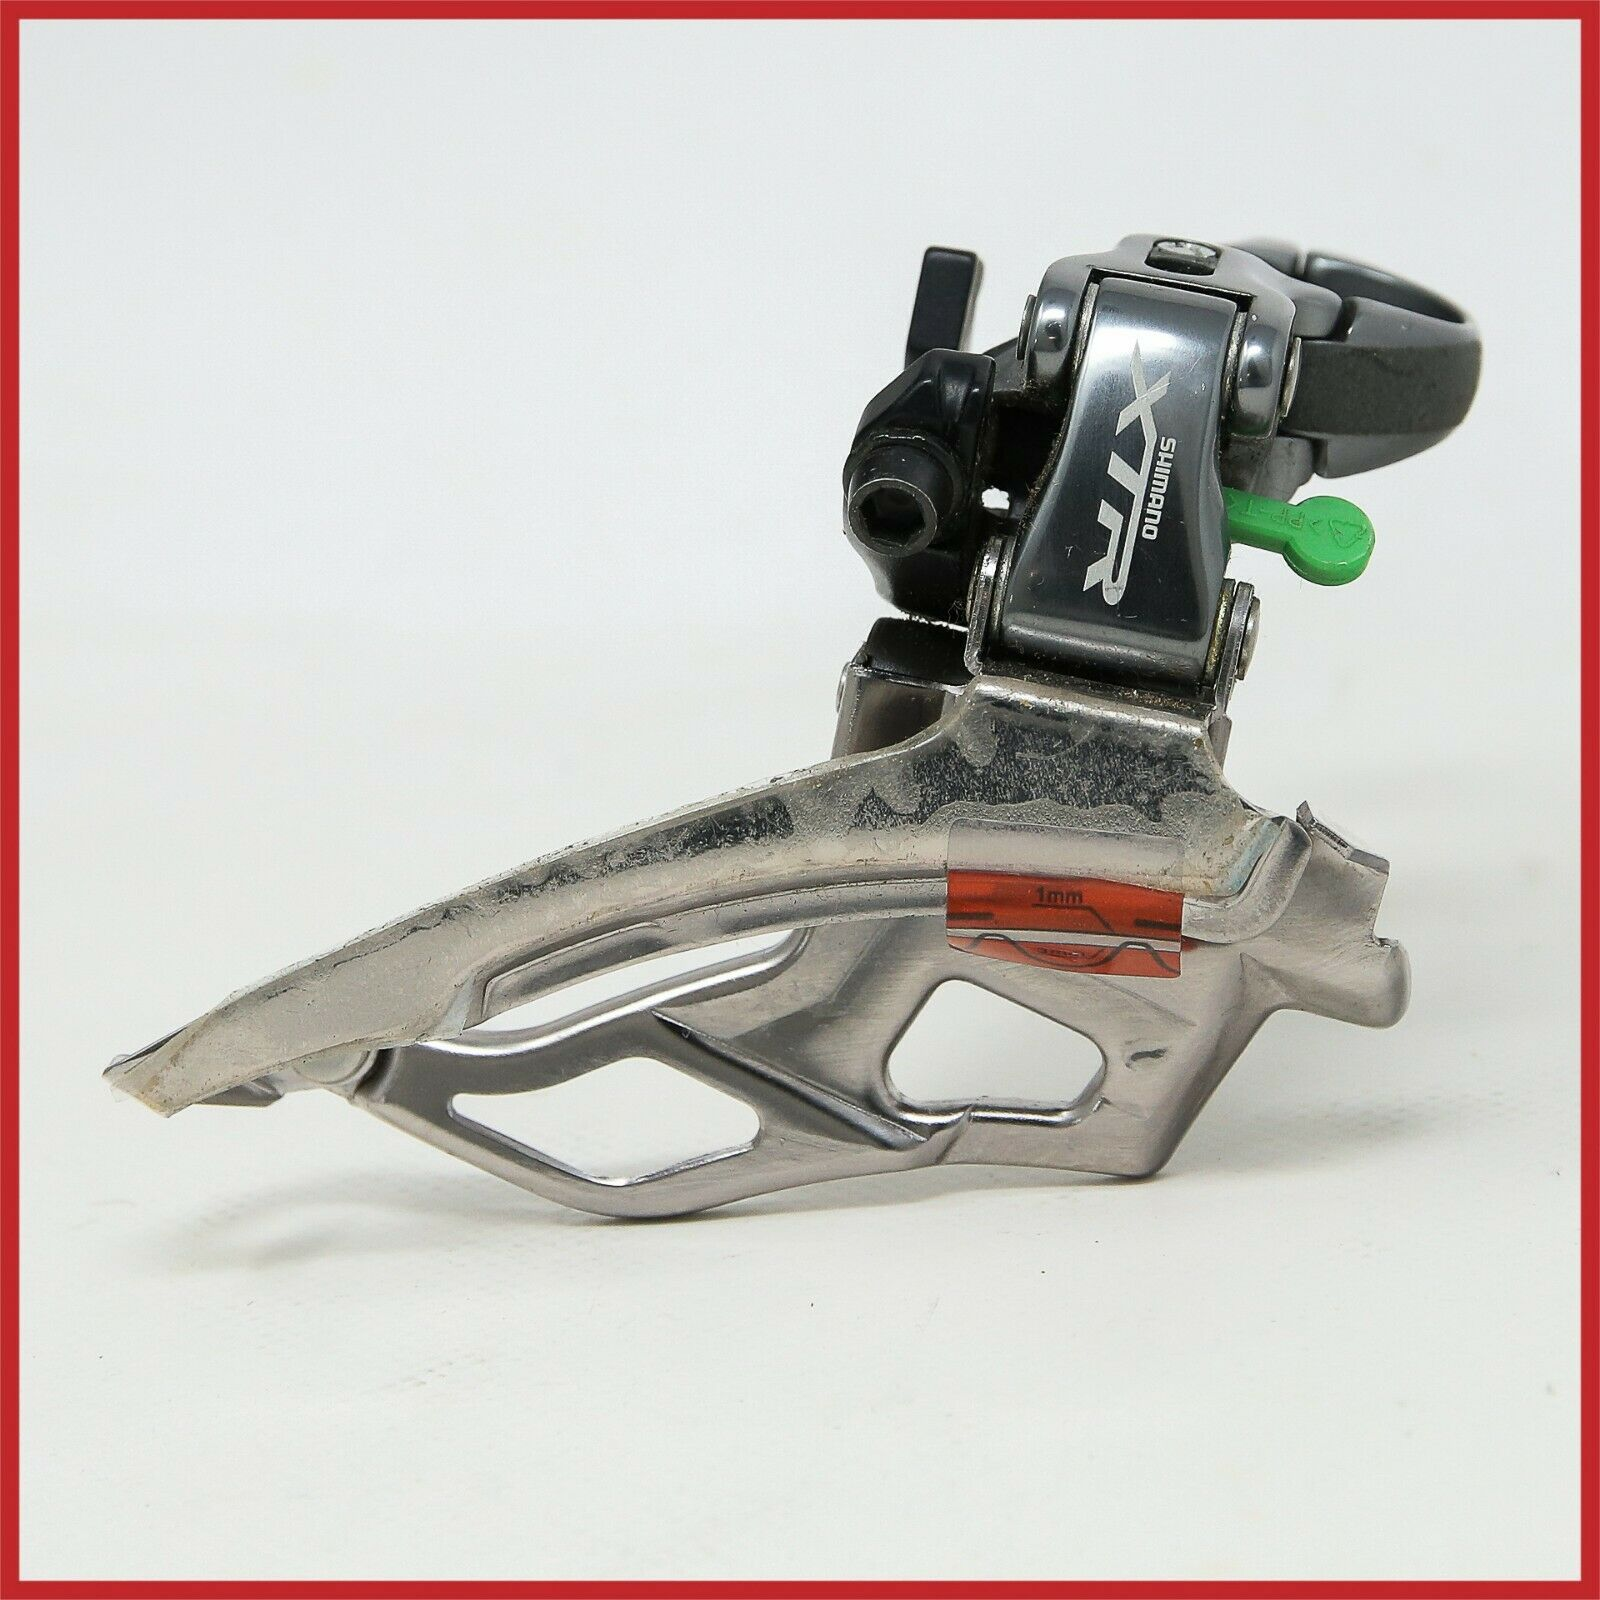 NOS SHIMANO XTR FD-M961 FRONT DERAILLEUR MTB CLAMP  31.8mm DUAL PULL 3x9 MOUNTAIN  fishional store for sale